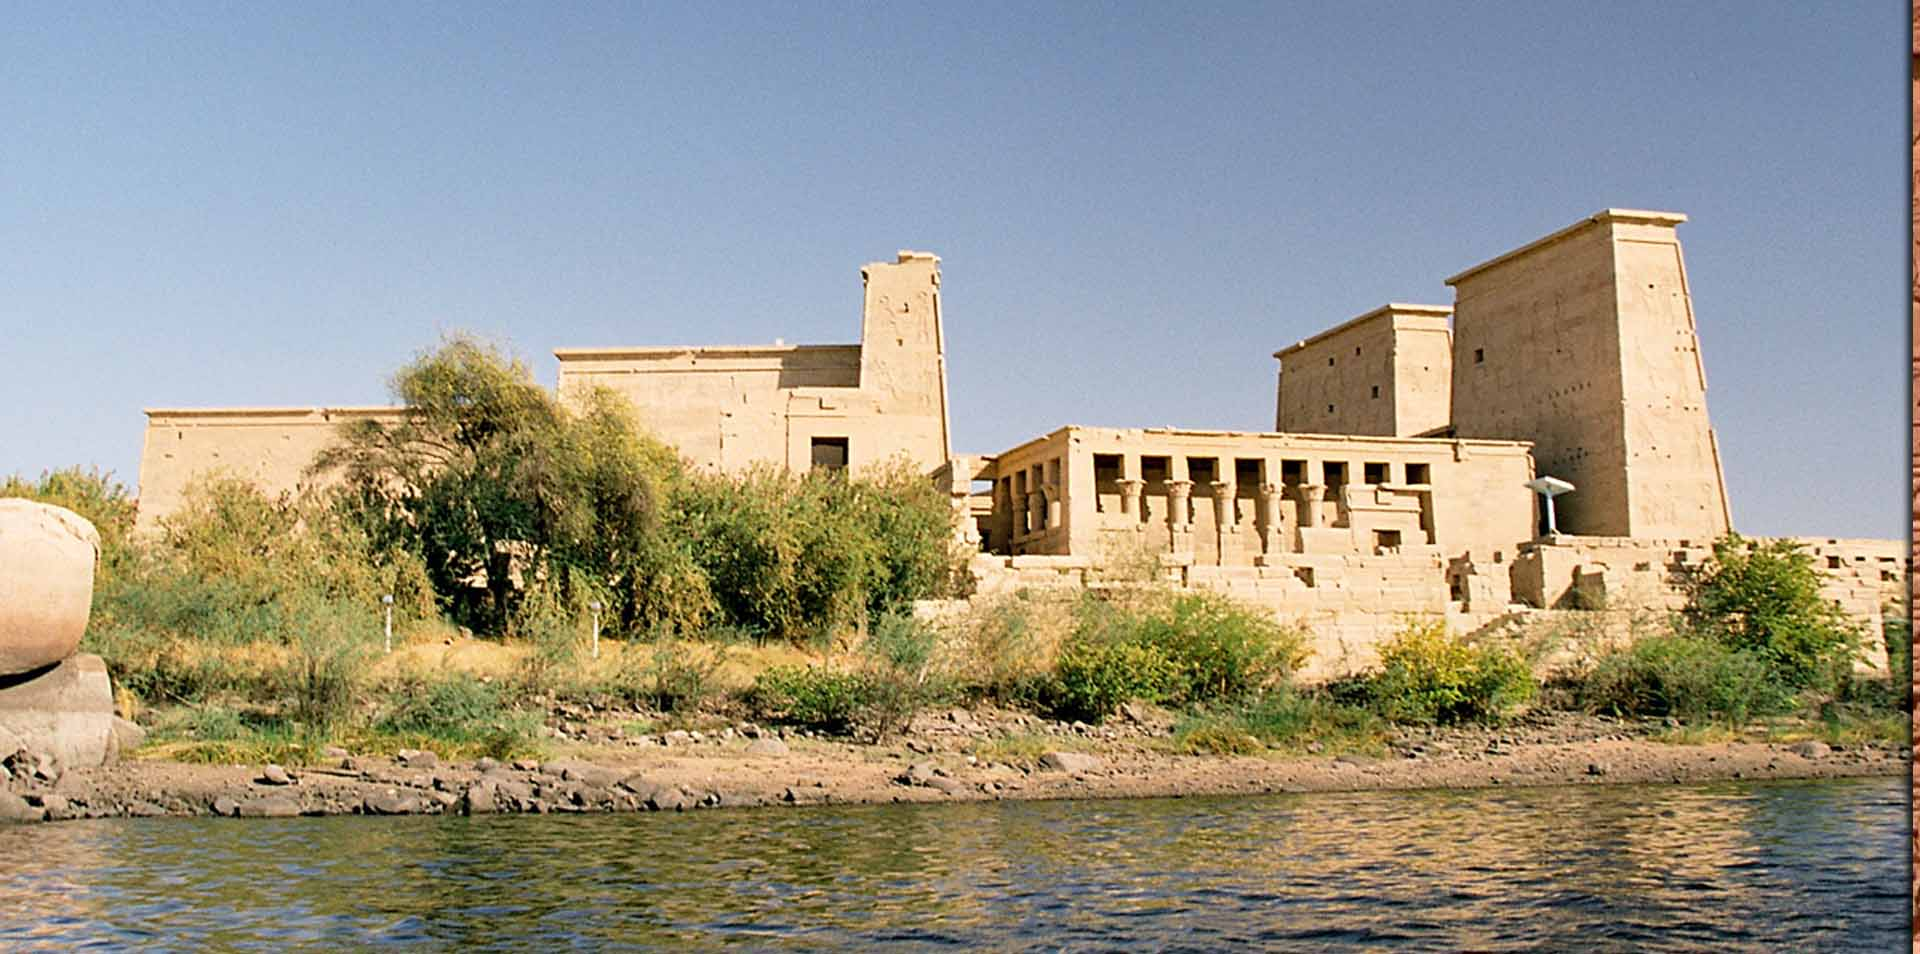 Aswan Philae Temple. Obelisk and High Dam Tour – Relax Tours Egypt